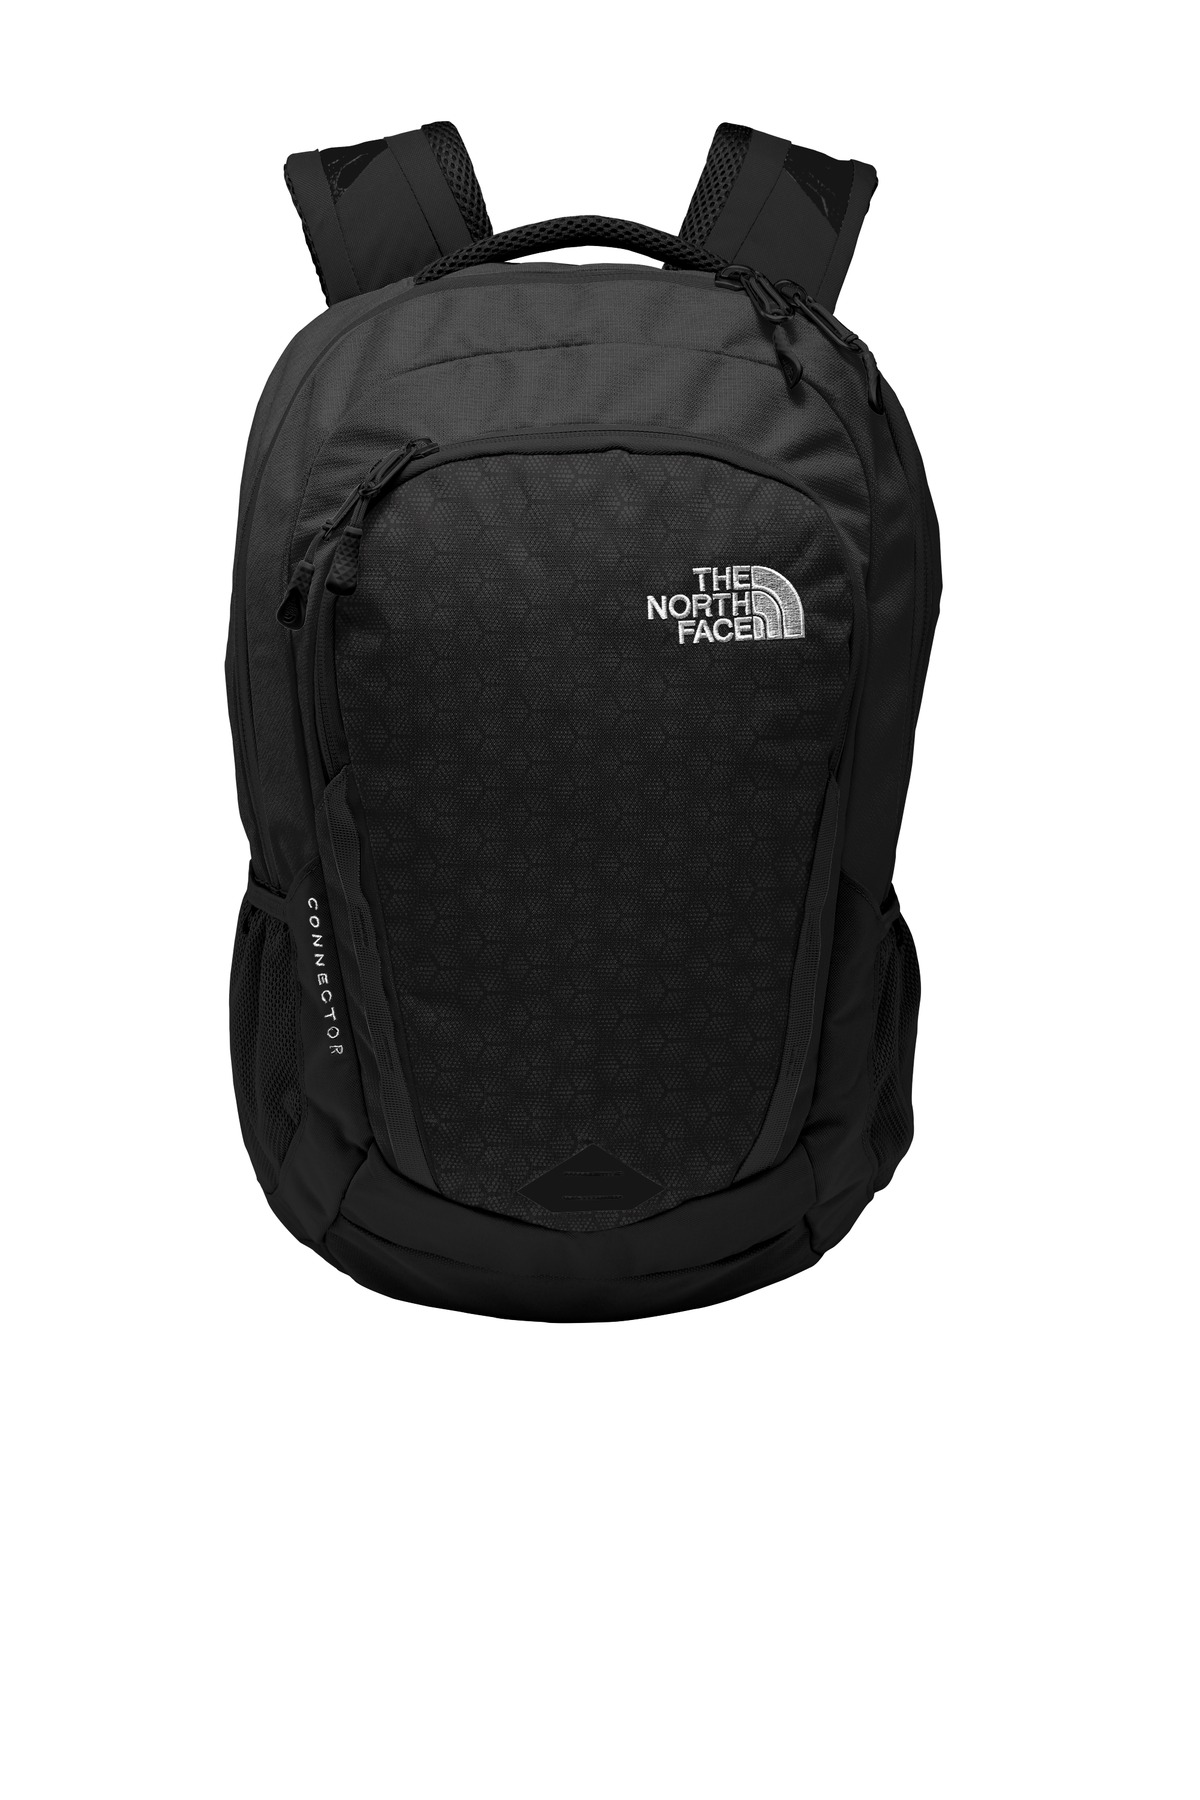 The North Face Connector Backpack.-The North Face